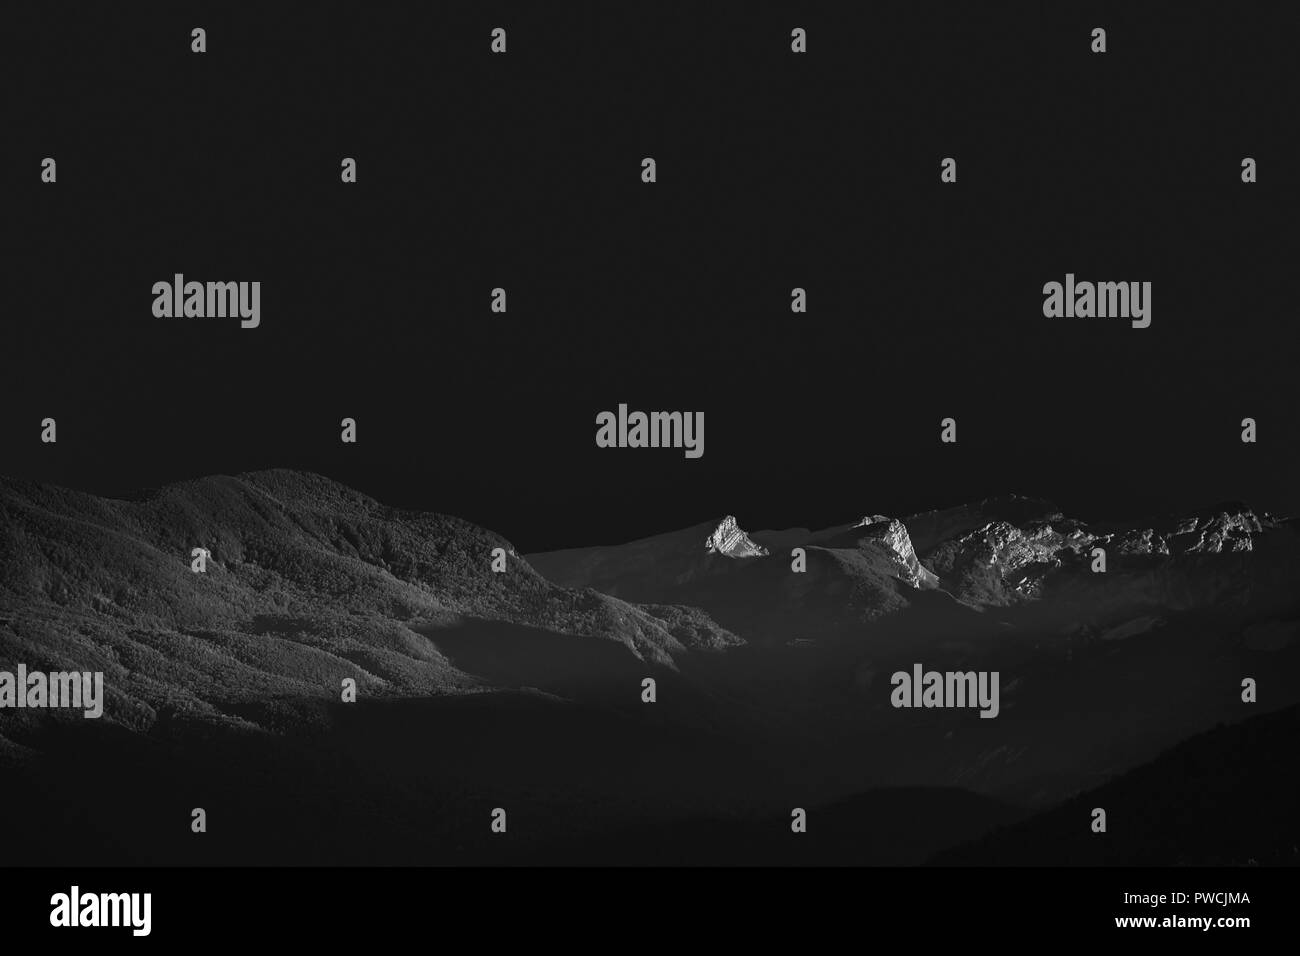 Lunigiana hills, north Tuscany, Italy. Beautiful evening landscape in monochrome black and white. Look other worldly, lunar landscape or similar, with horizon. - Stock Image